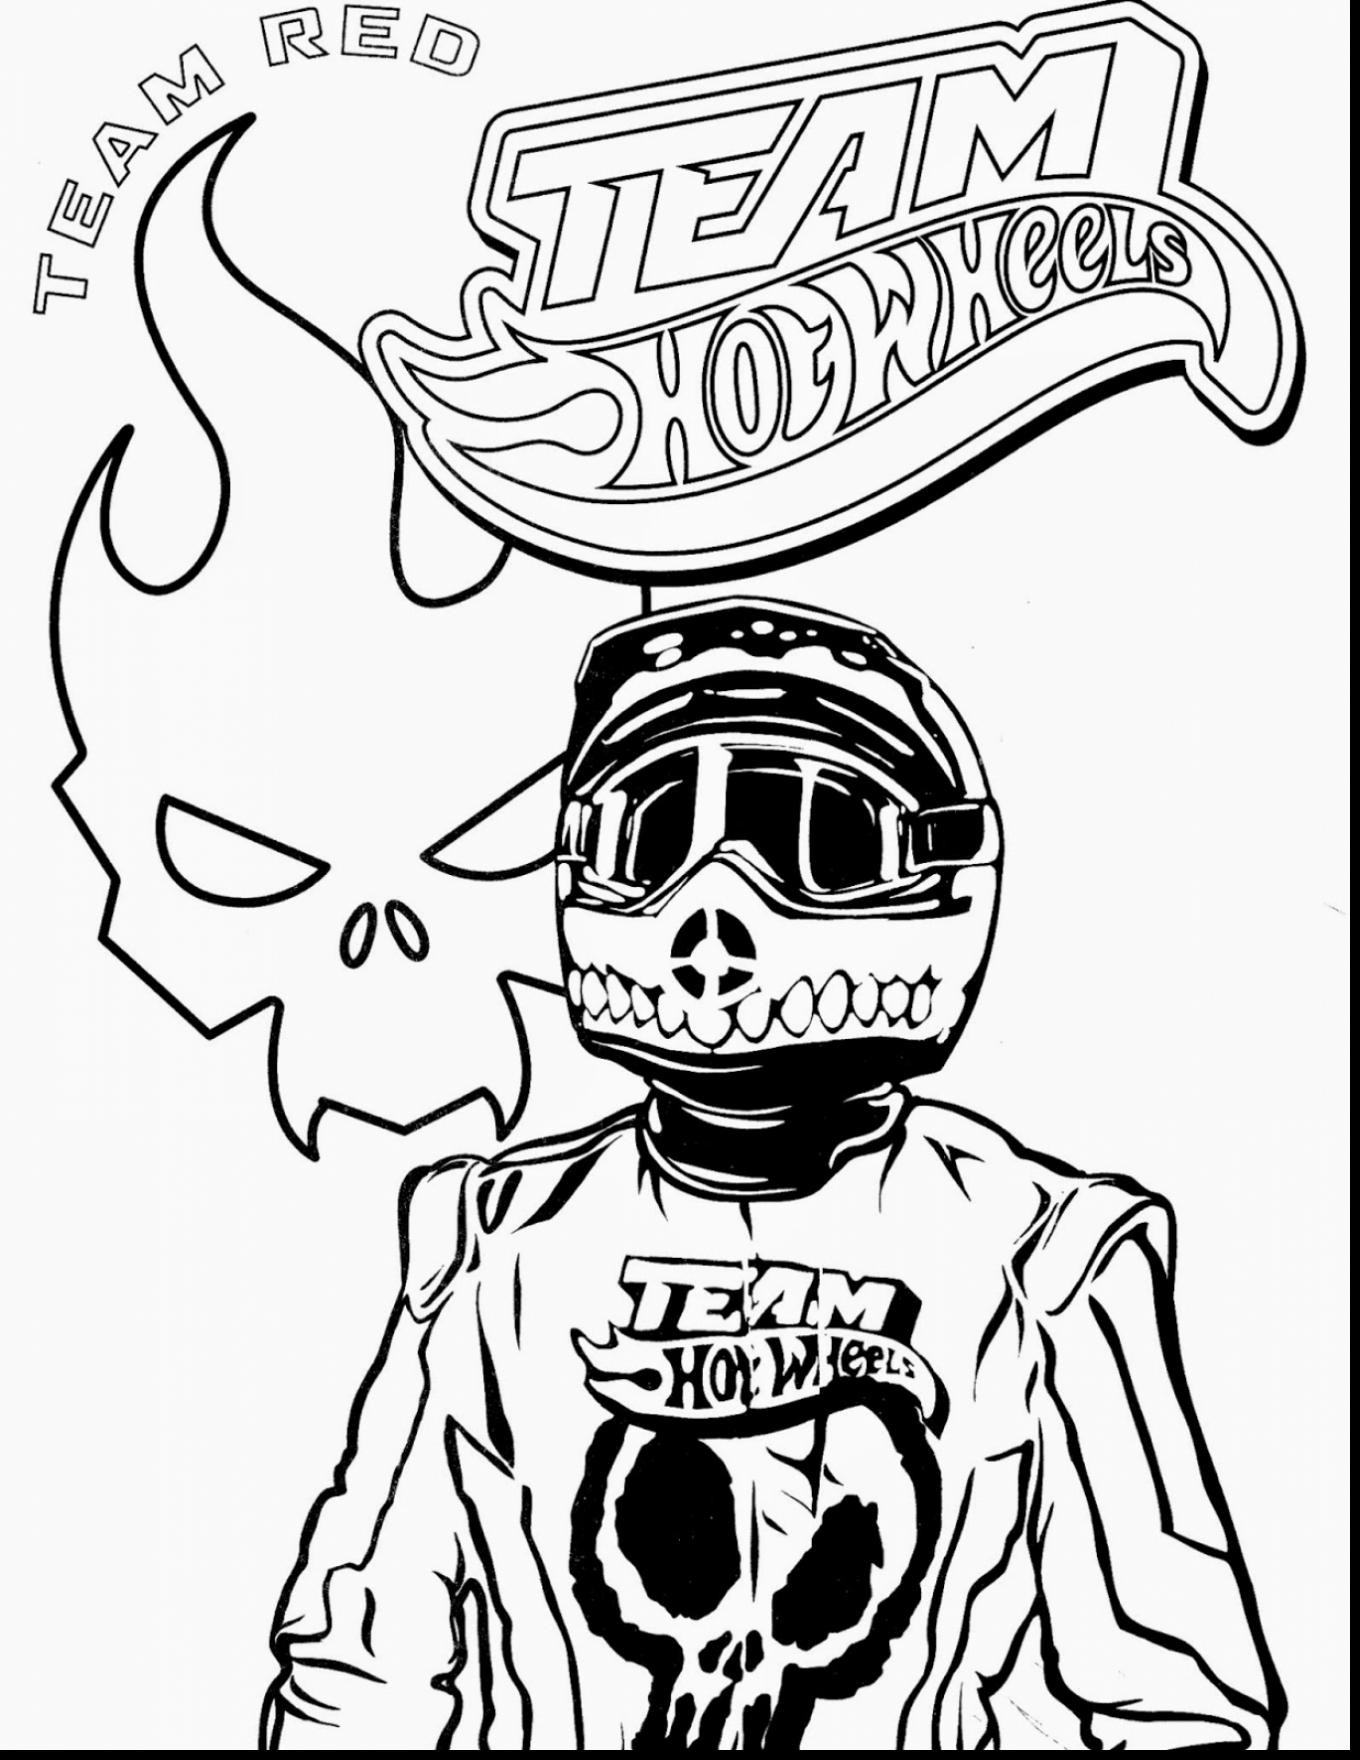 1360x1760 Battle Force Coloring Pages To Print Hot Wheels Printable